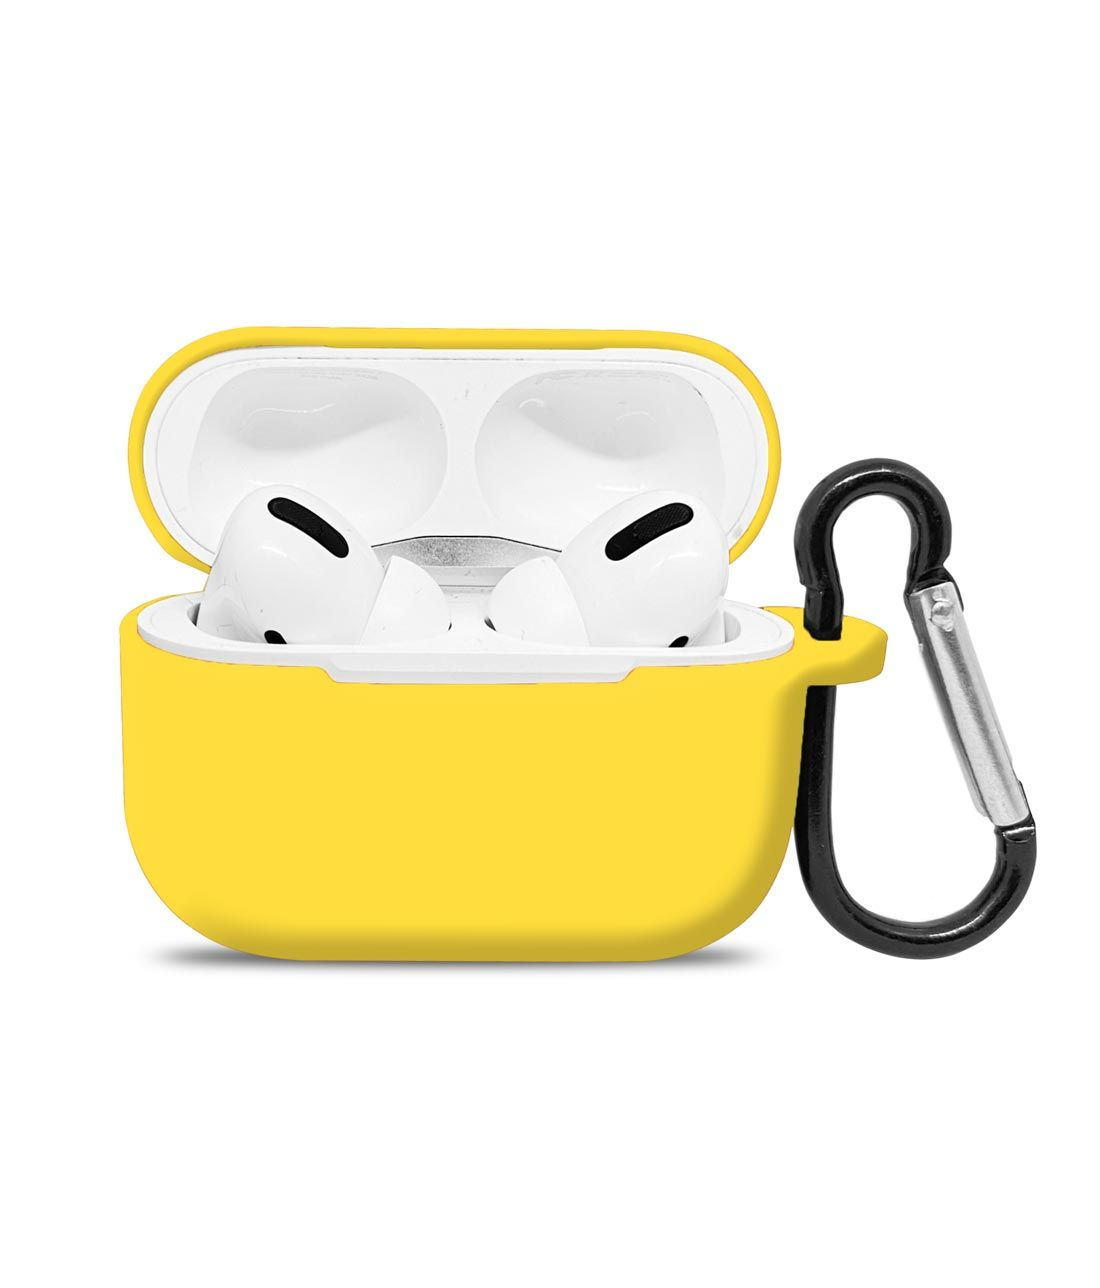 Silicone Case Yellow - AirPods Pro  Case